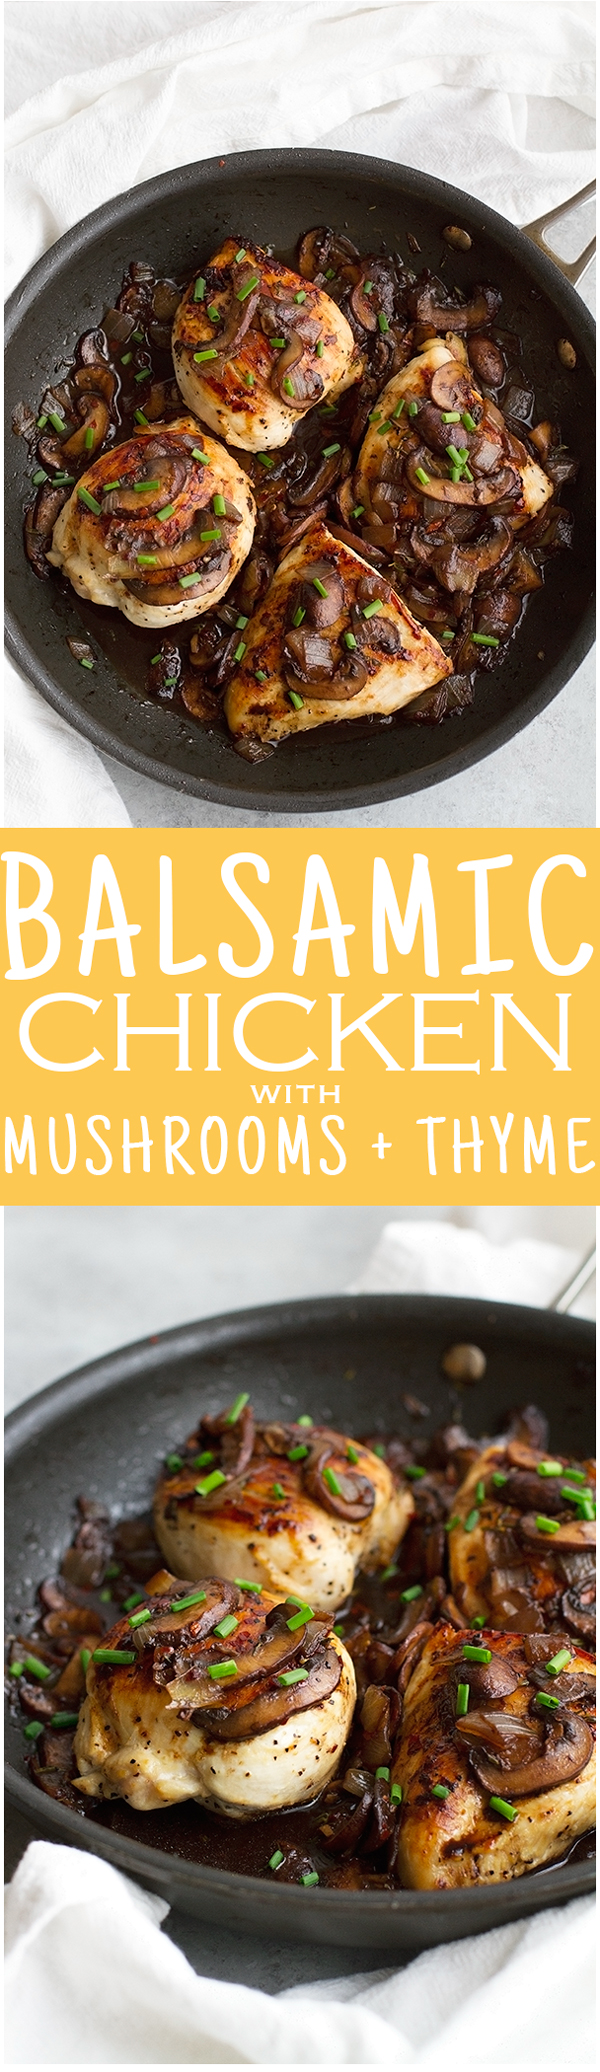 Balsamic Chicken with Mushrooms and Thyme - 30 minutes and super easy to pull together. Perfect for weeknights! #chickendinner #balsamicchicken #roastedchicken | Littlespicejar.com